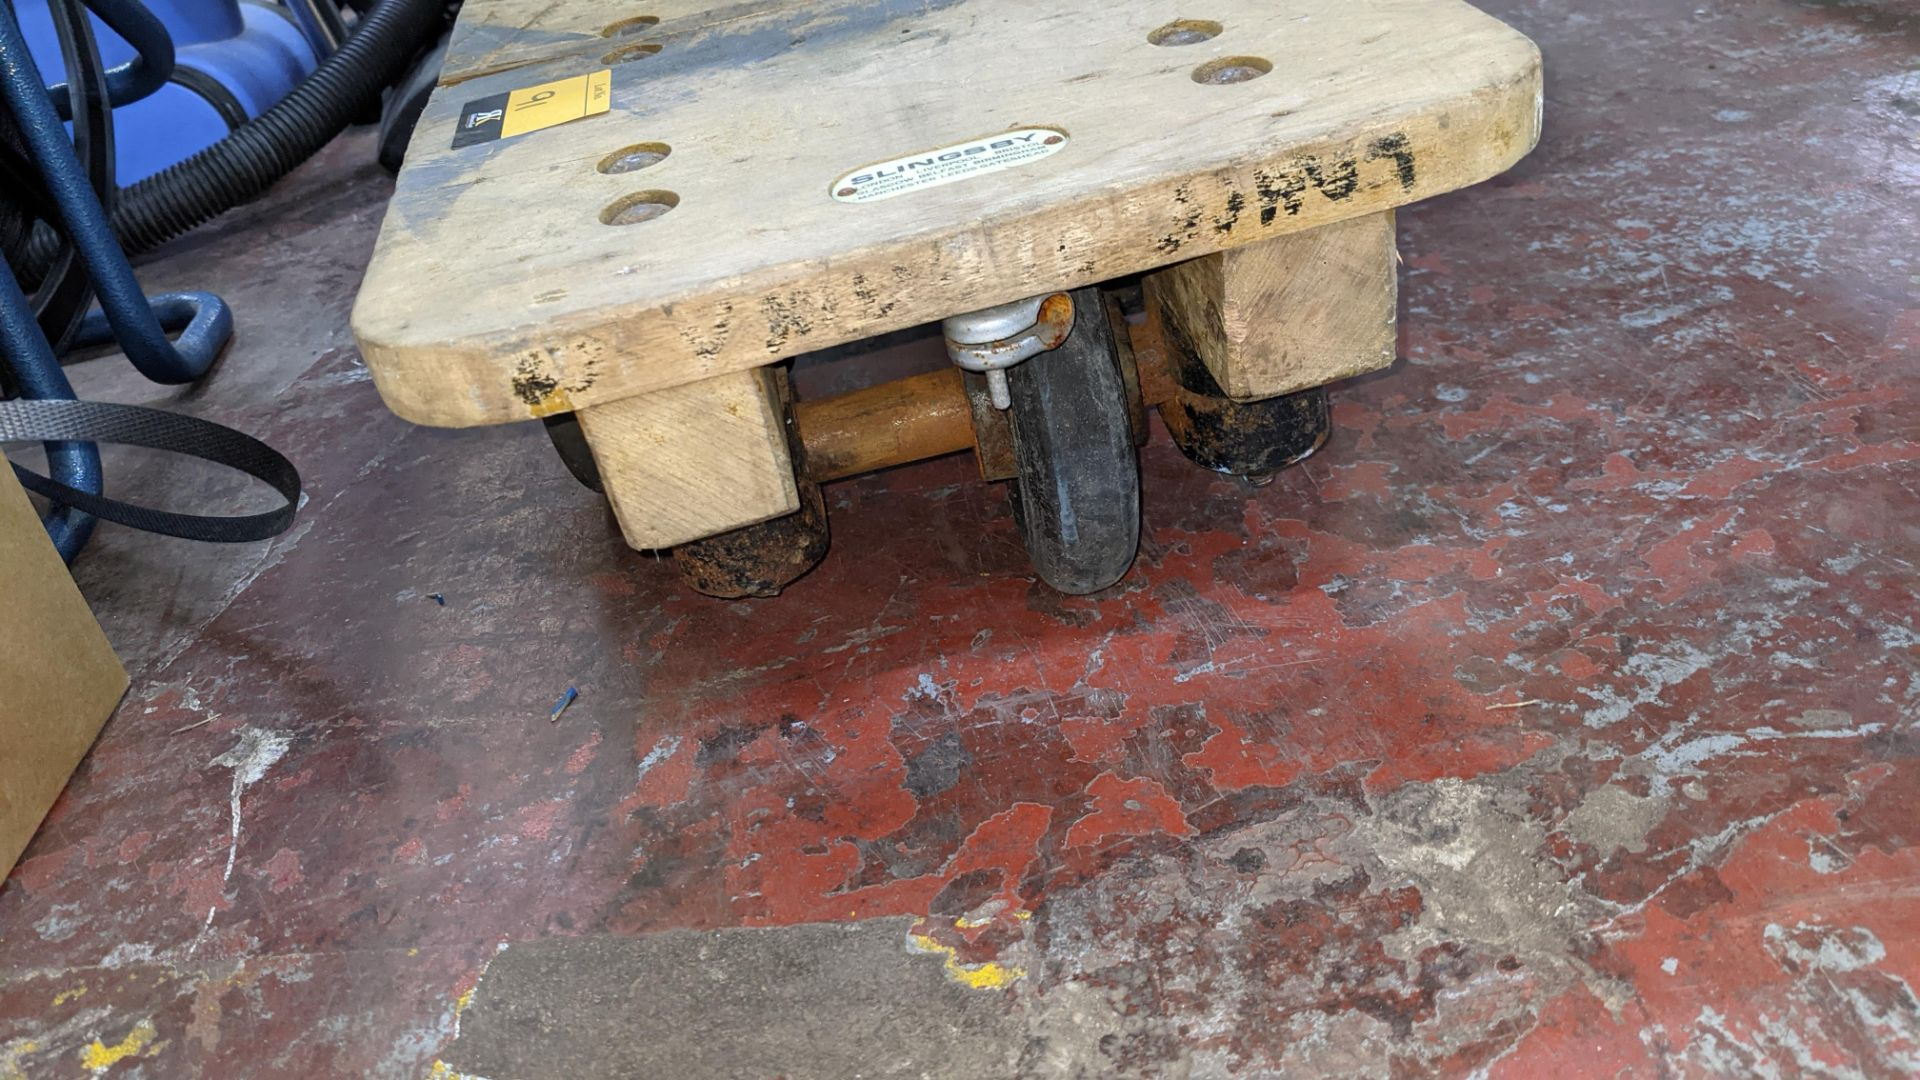 Slingsby small 4 wheel dolly - platform 460mm x 310mm - Image 5 of 5